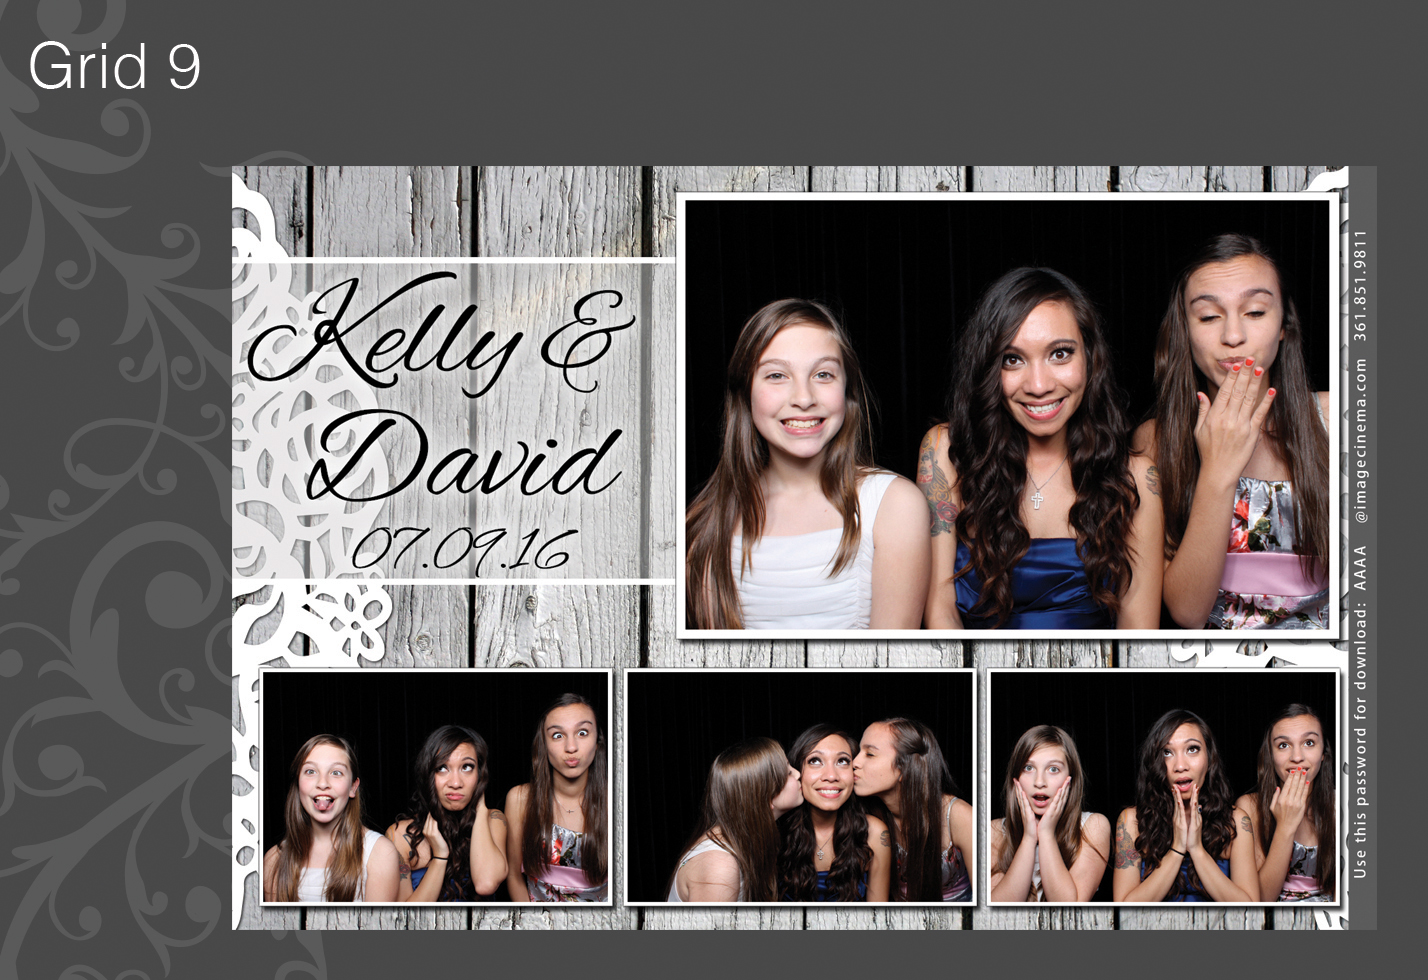 Photo Booth Grid 9